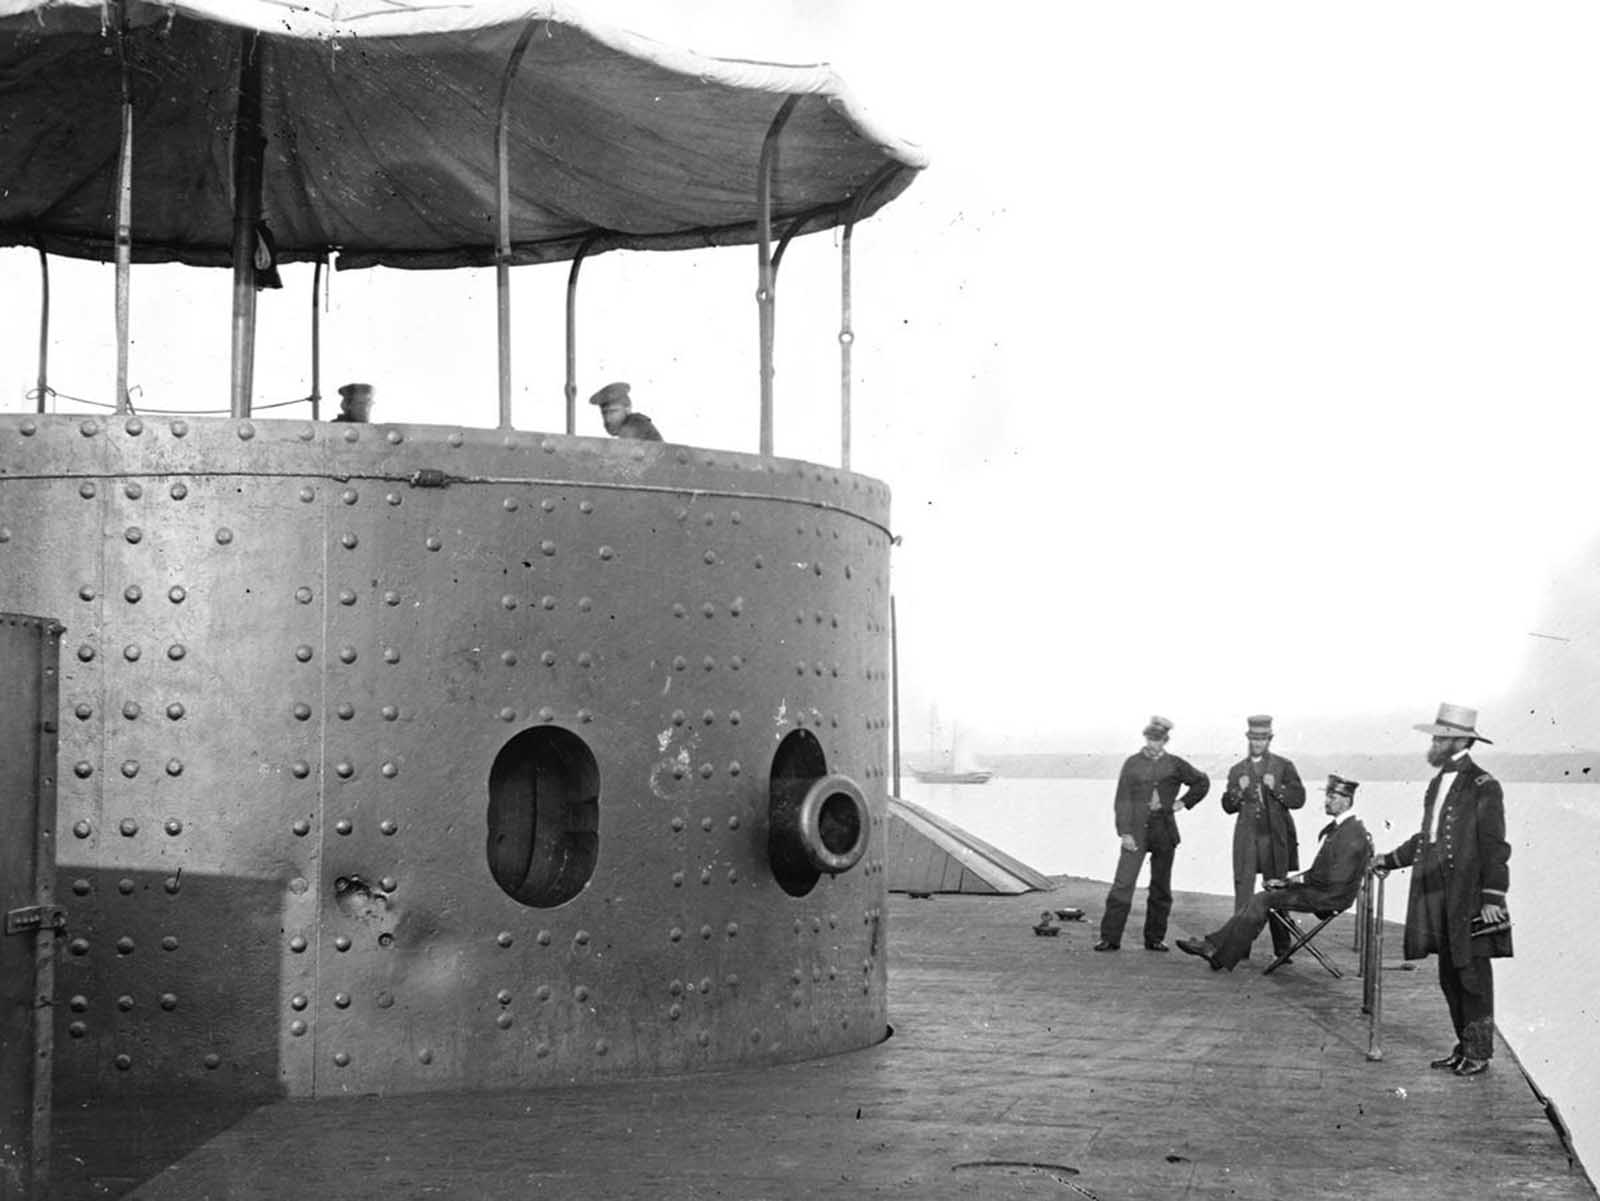 The deck and turret of the ironclad U.S.S. Monitor on the James River, Virginia, on July 9, 1862. the Monitor was the first ironclad warship commissioned by the U.S. Navy, and famously fought the Confederate ironclad CSS Virginia (built from the remnants of the USS Merrimack) in the Battle of Hampton Roads -- the first meeting in combat of ironclad warships -- on March 8-9, 1862.